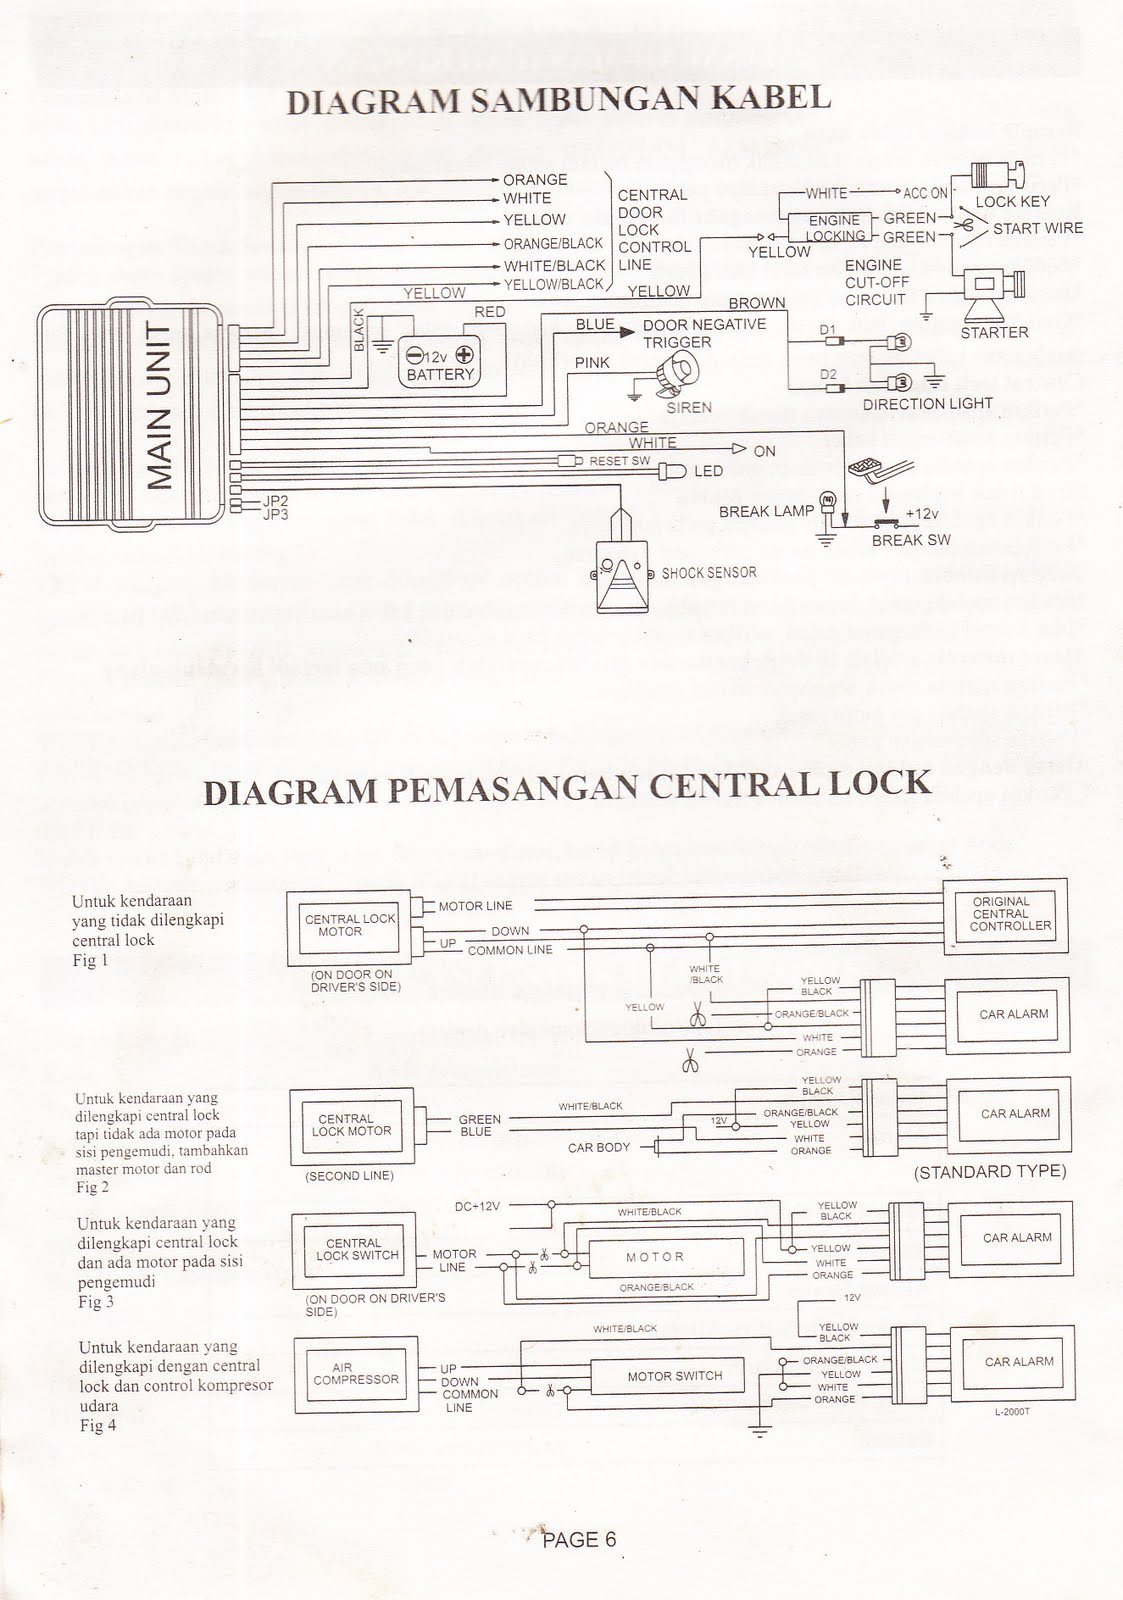 giordon car alarm system wiring diagram for relay a scooter best library mobil schema online controller schematic